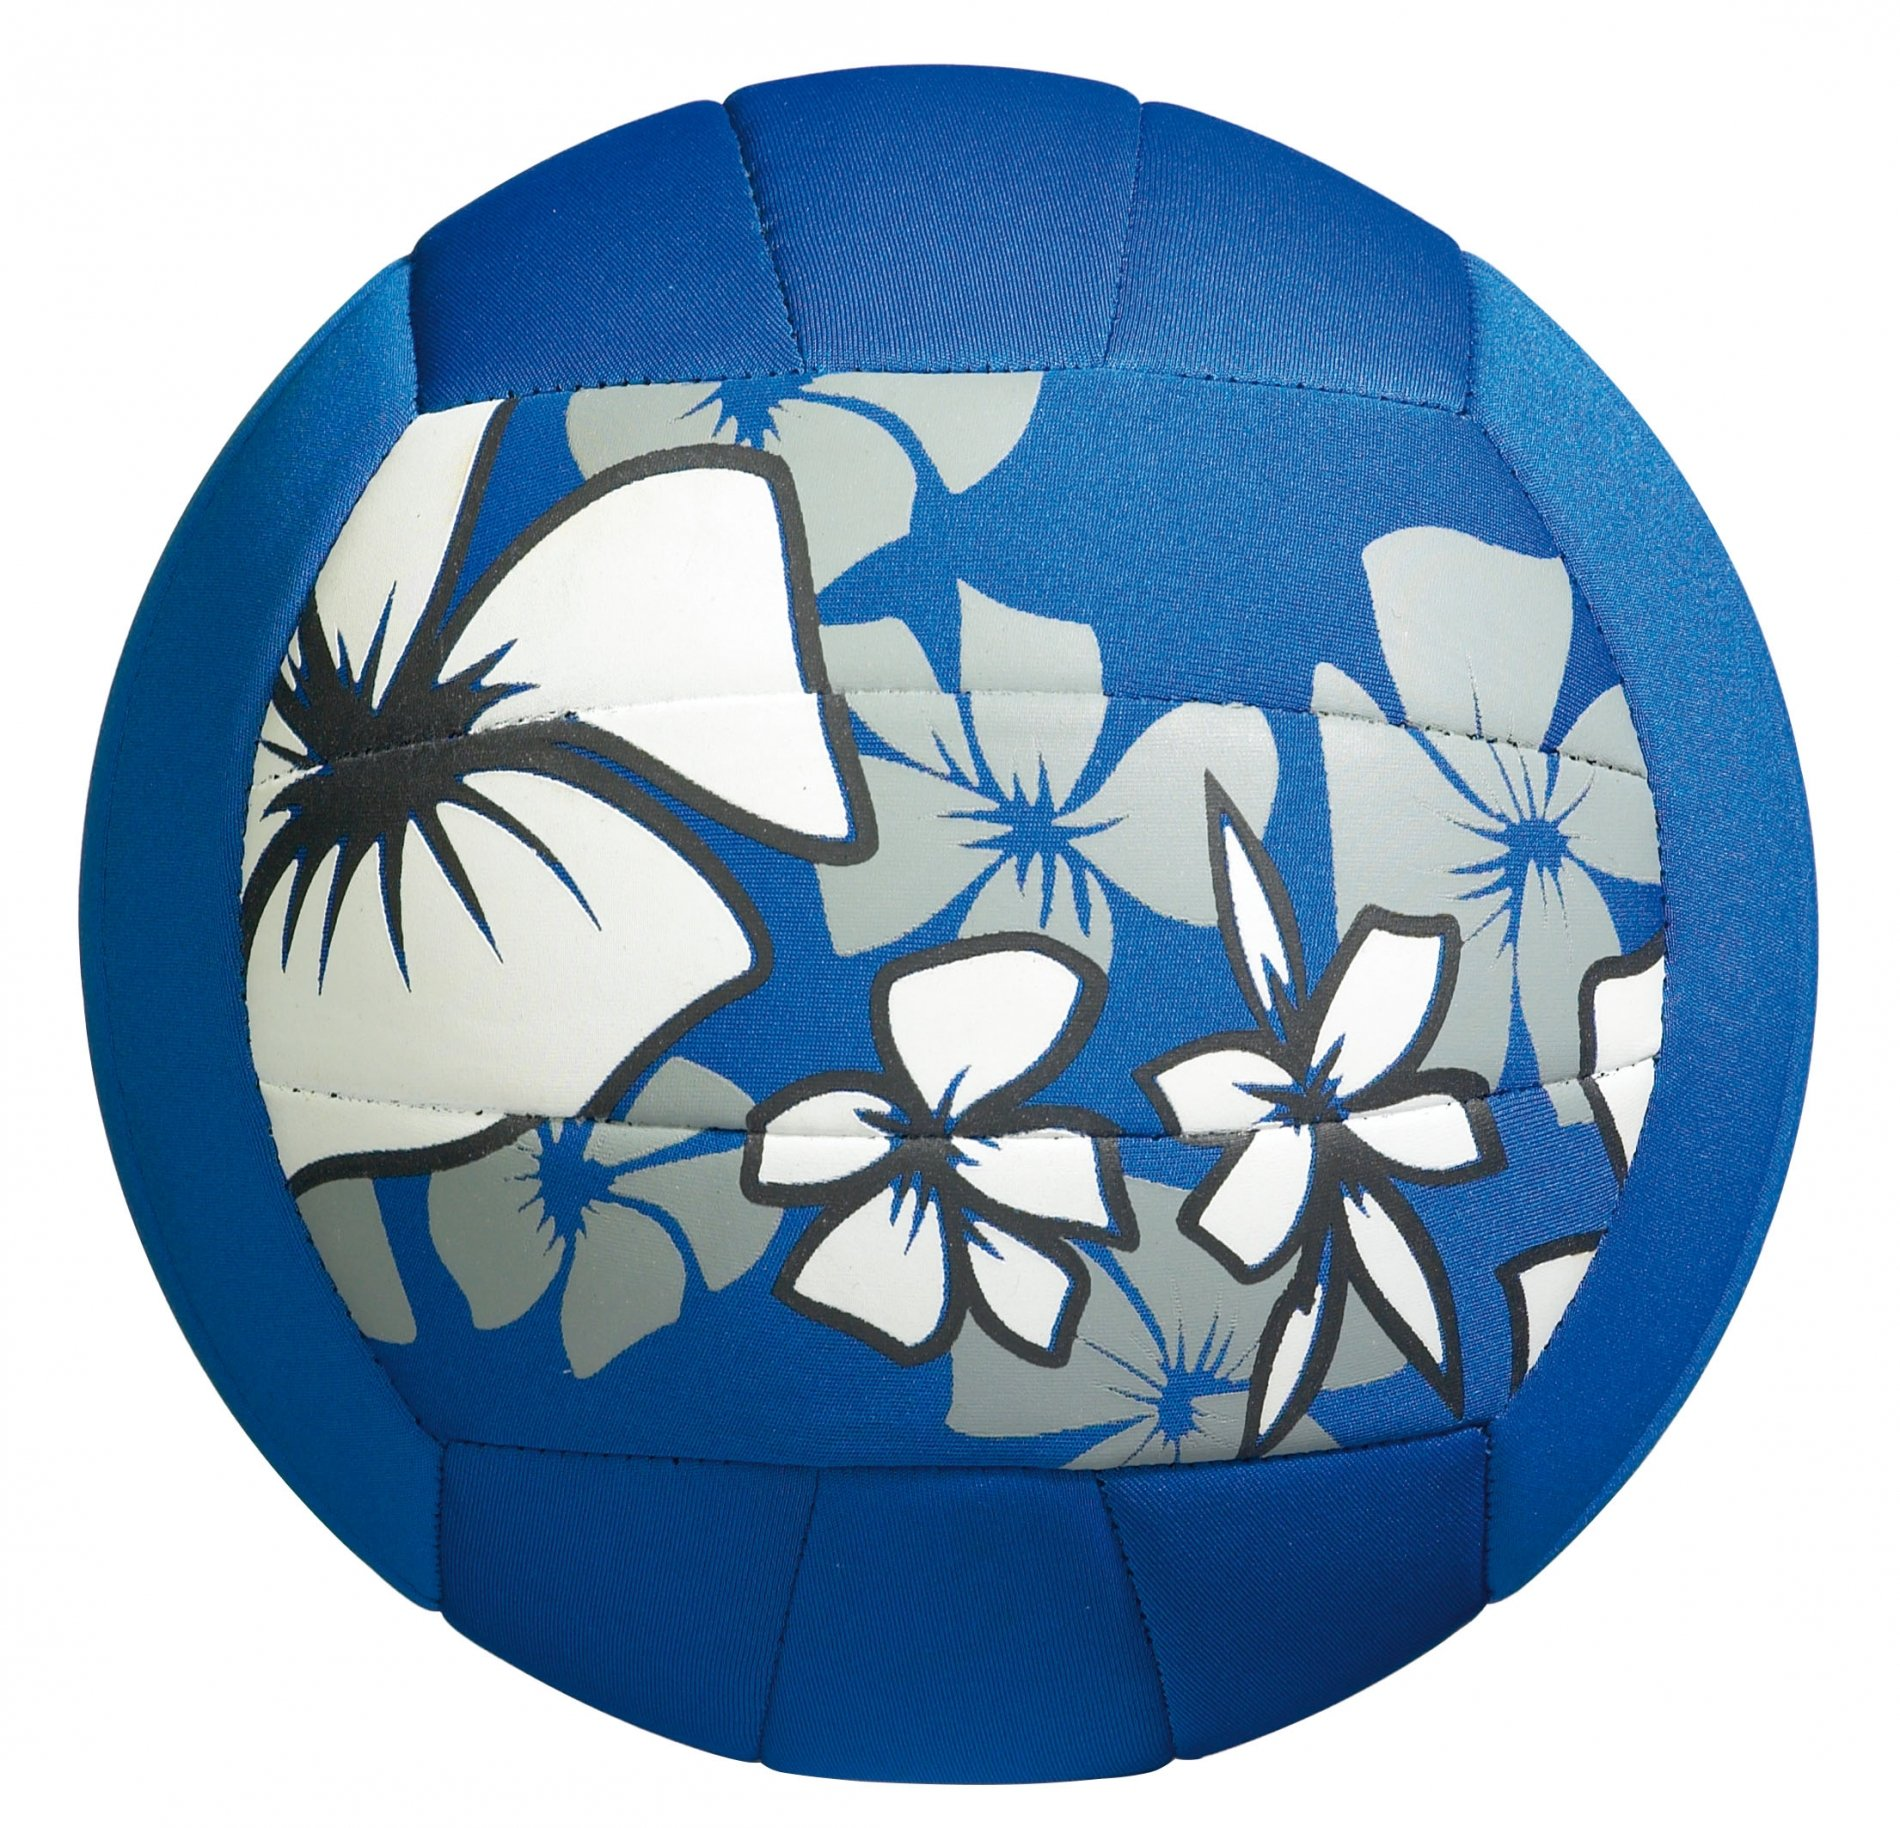 Grande balle de plage neopren bleue swimming pools webshop for Mangeoire synonyme